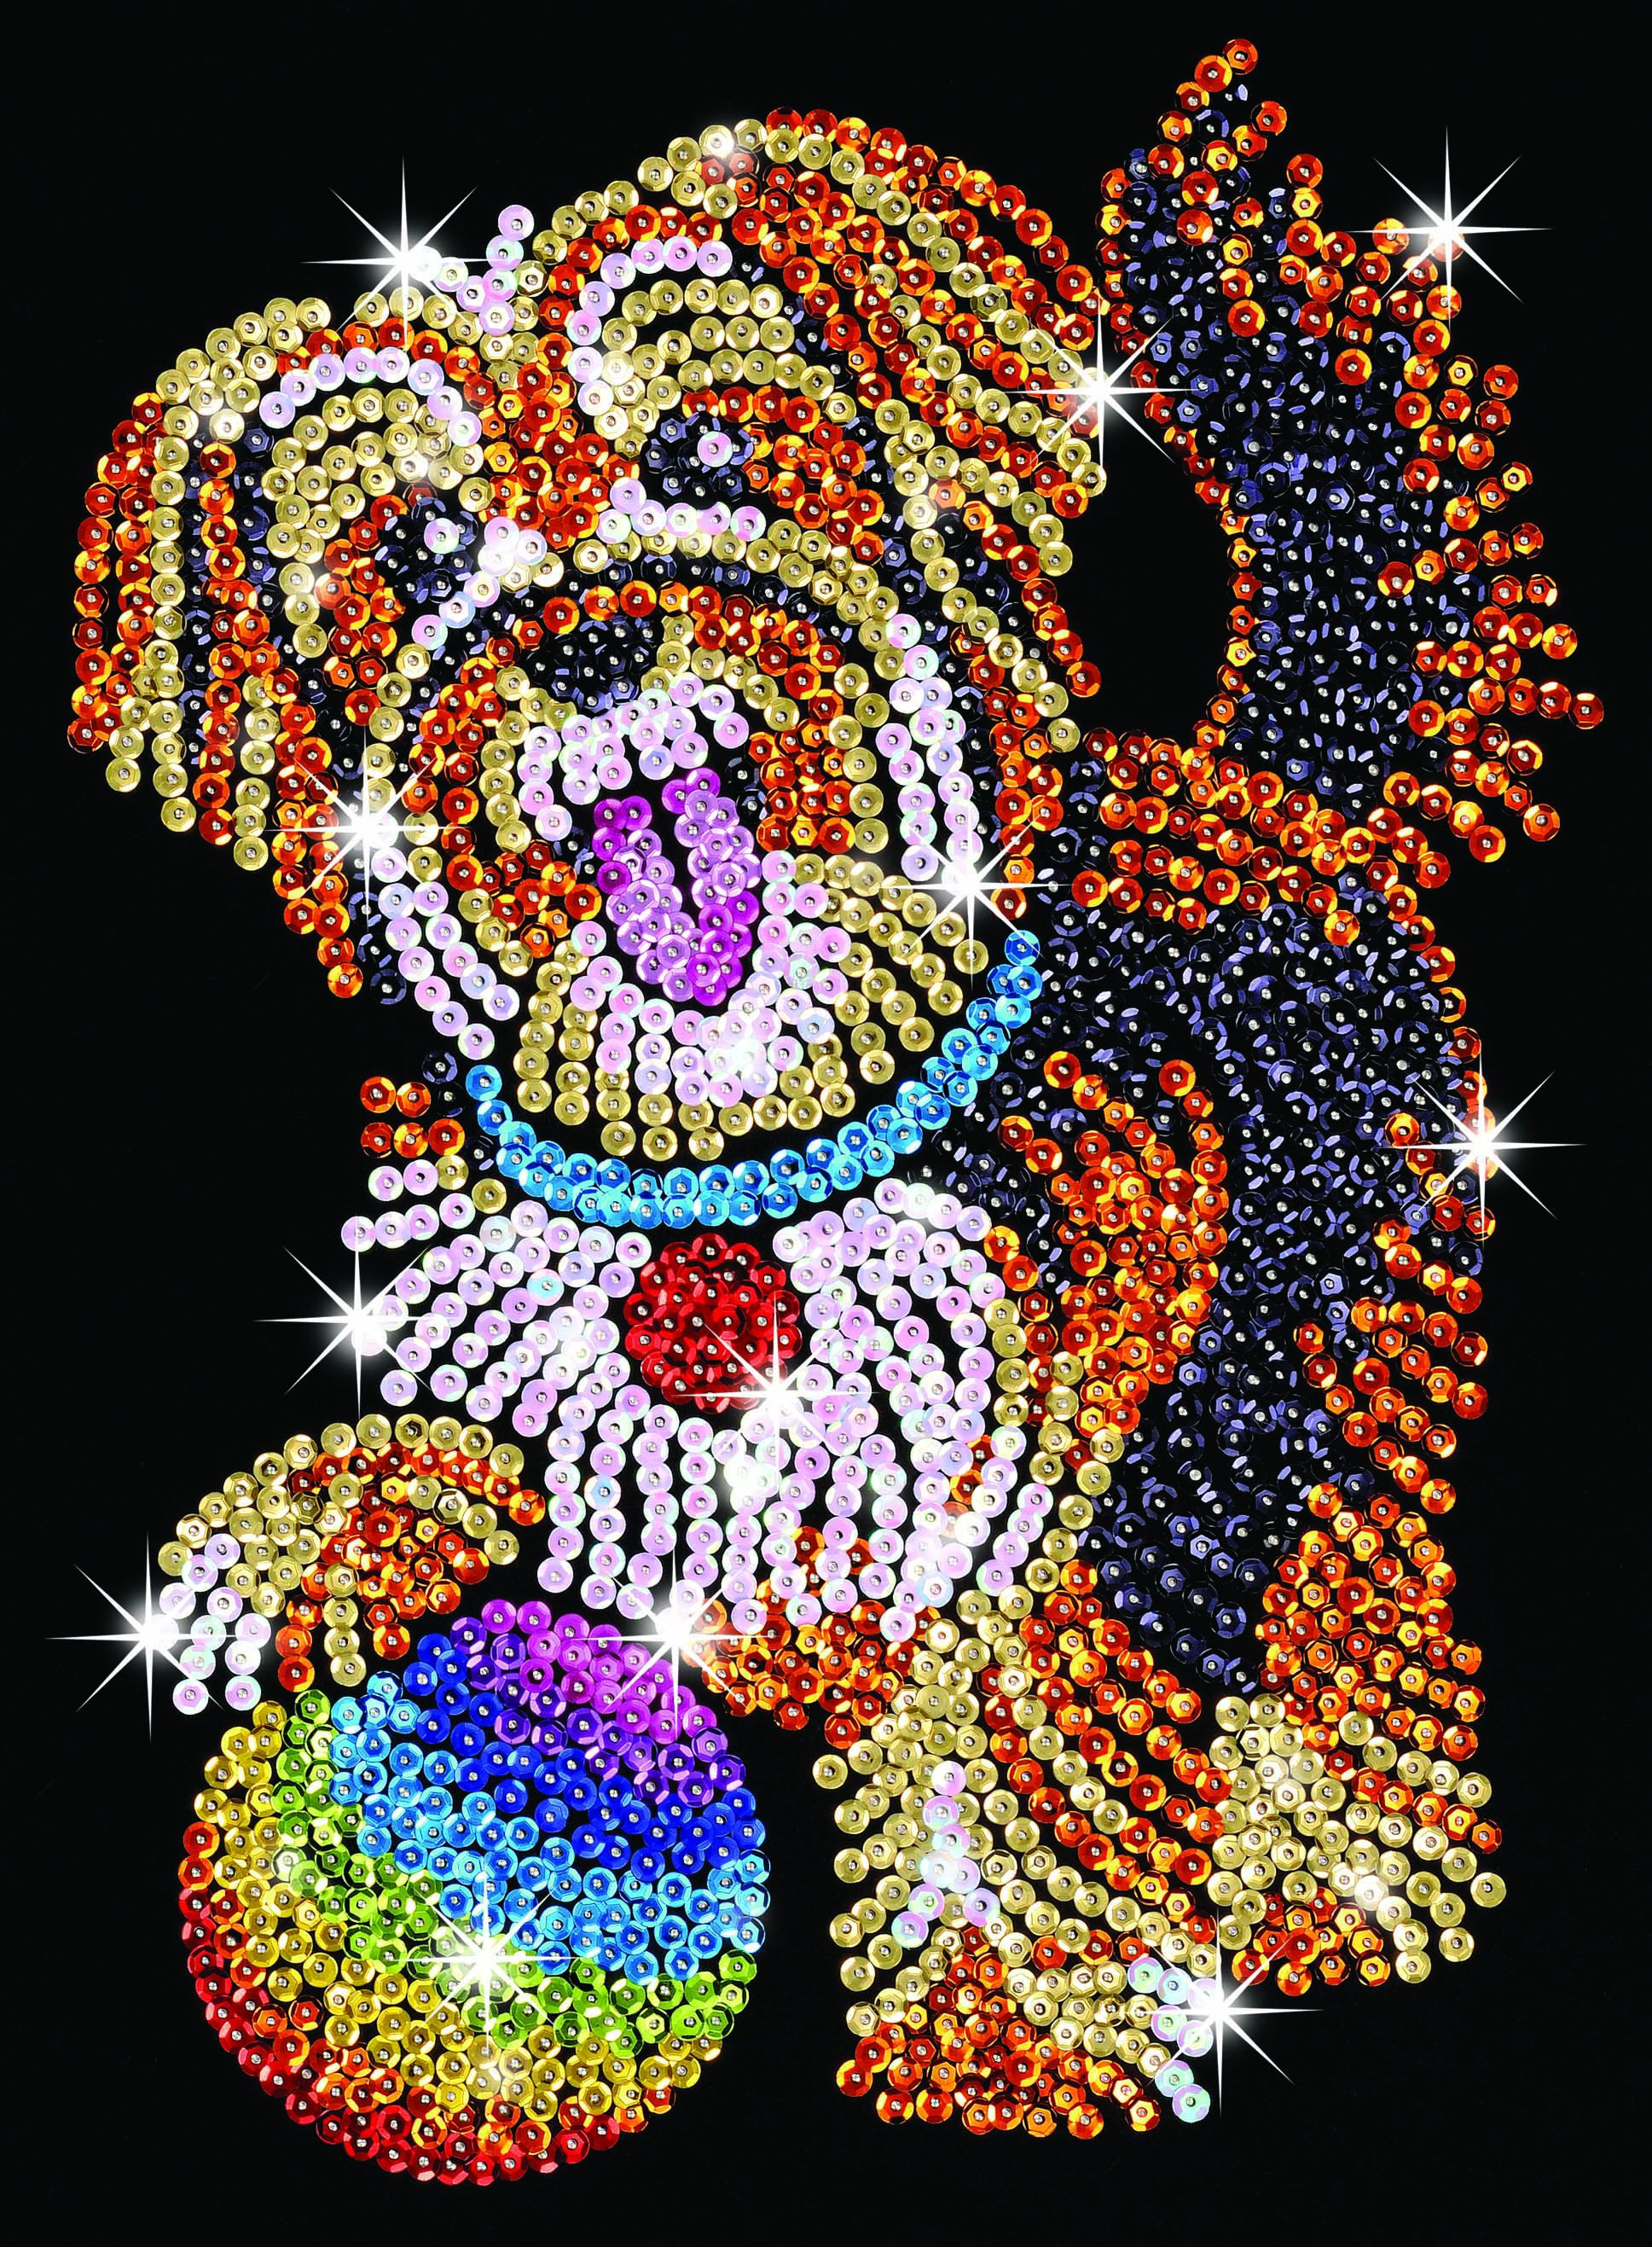 Hobbies Sequin Art Puppy Craft Kit Hobbies Tasha